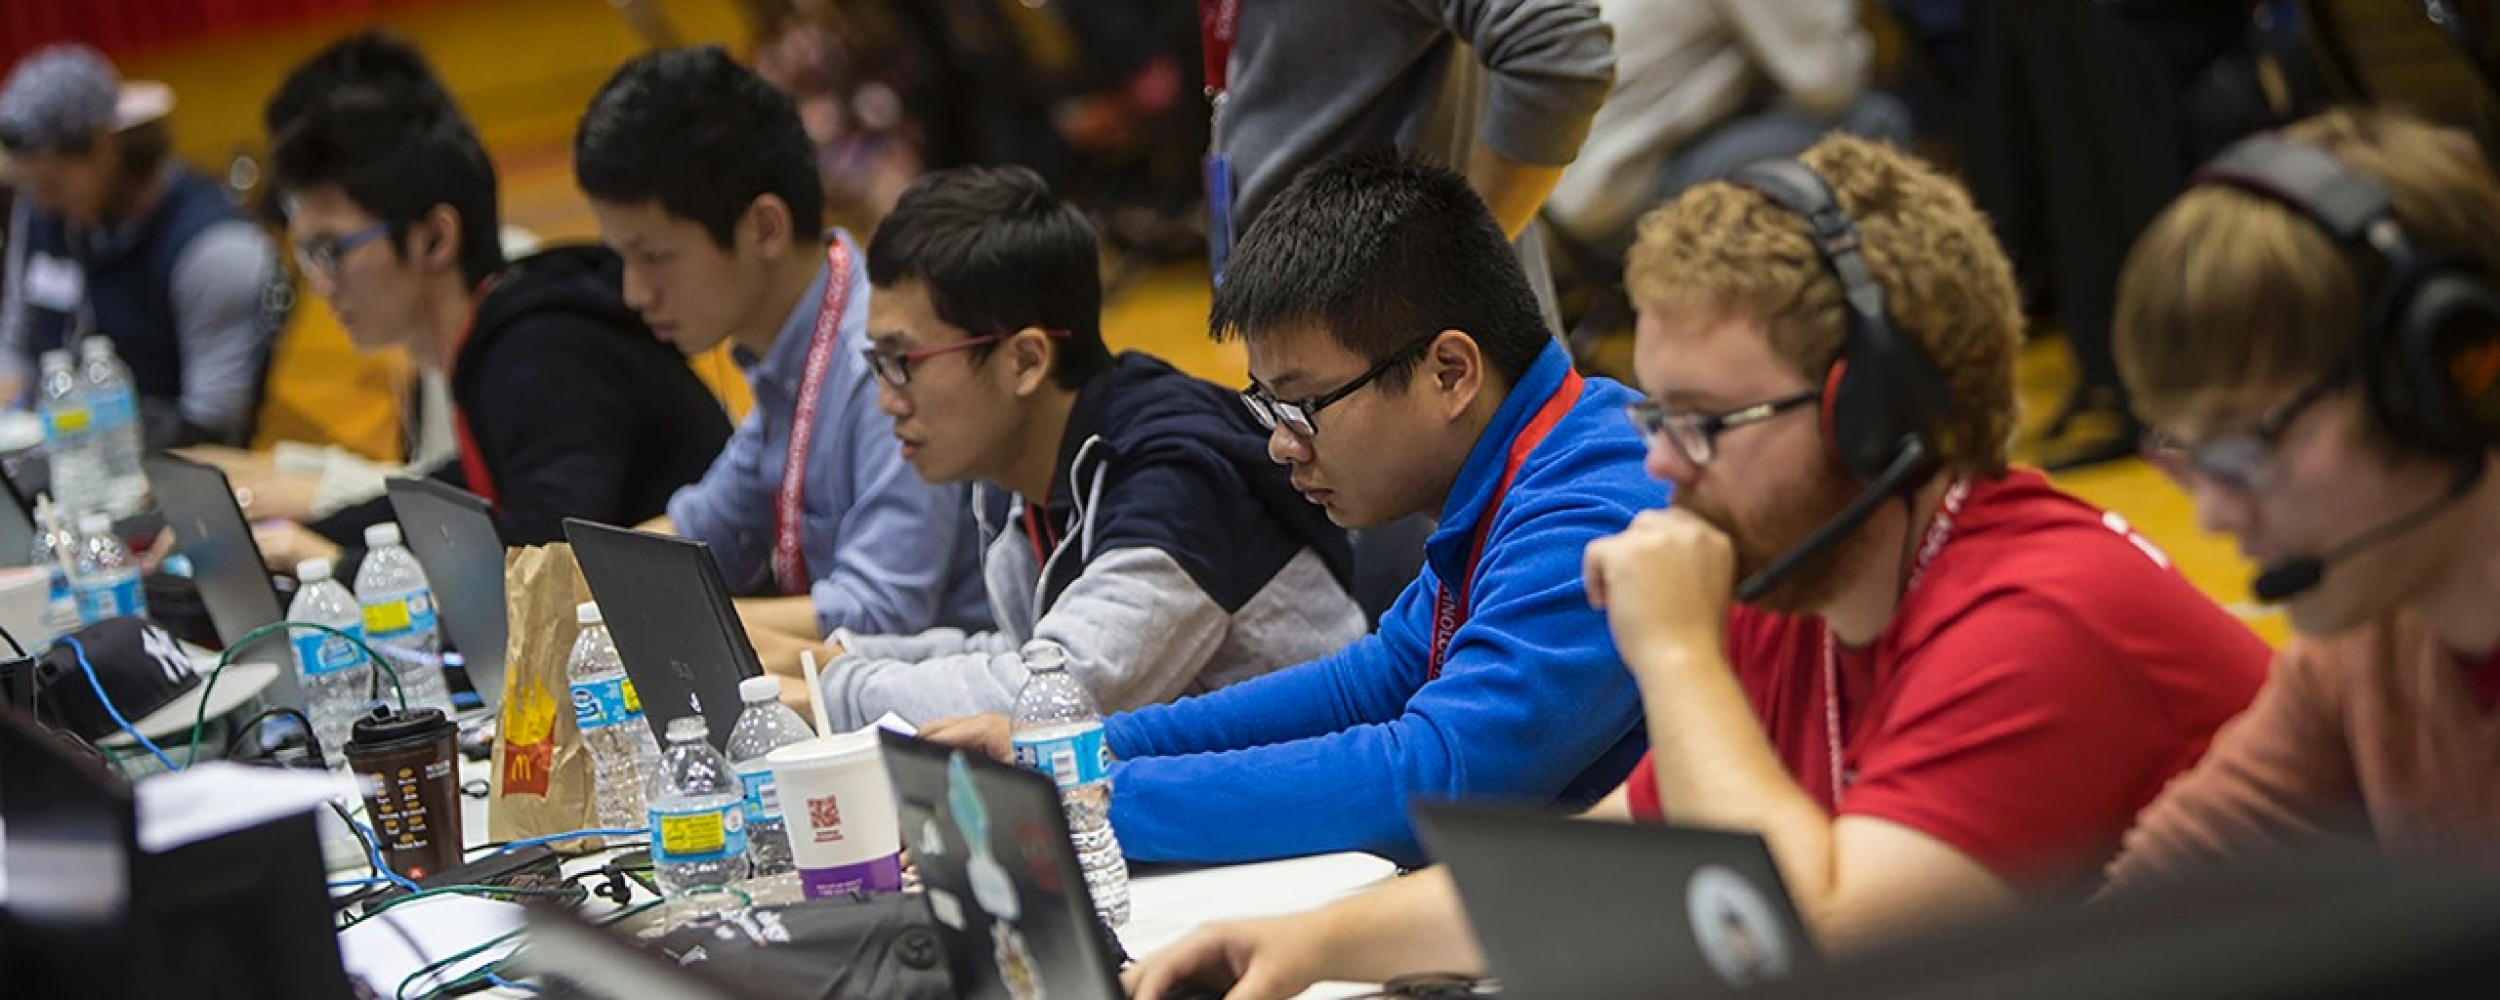 UC hosts largest-ever video gaming competition as part of UCLoL ...